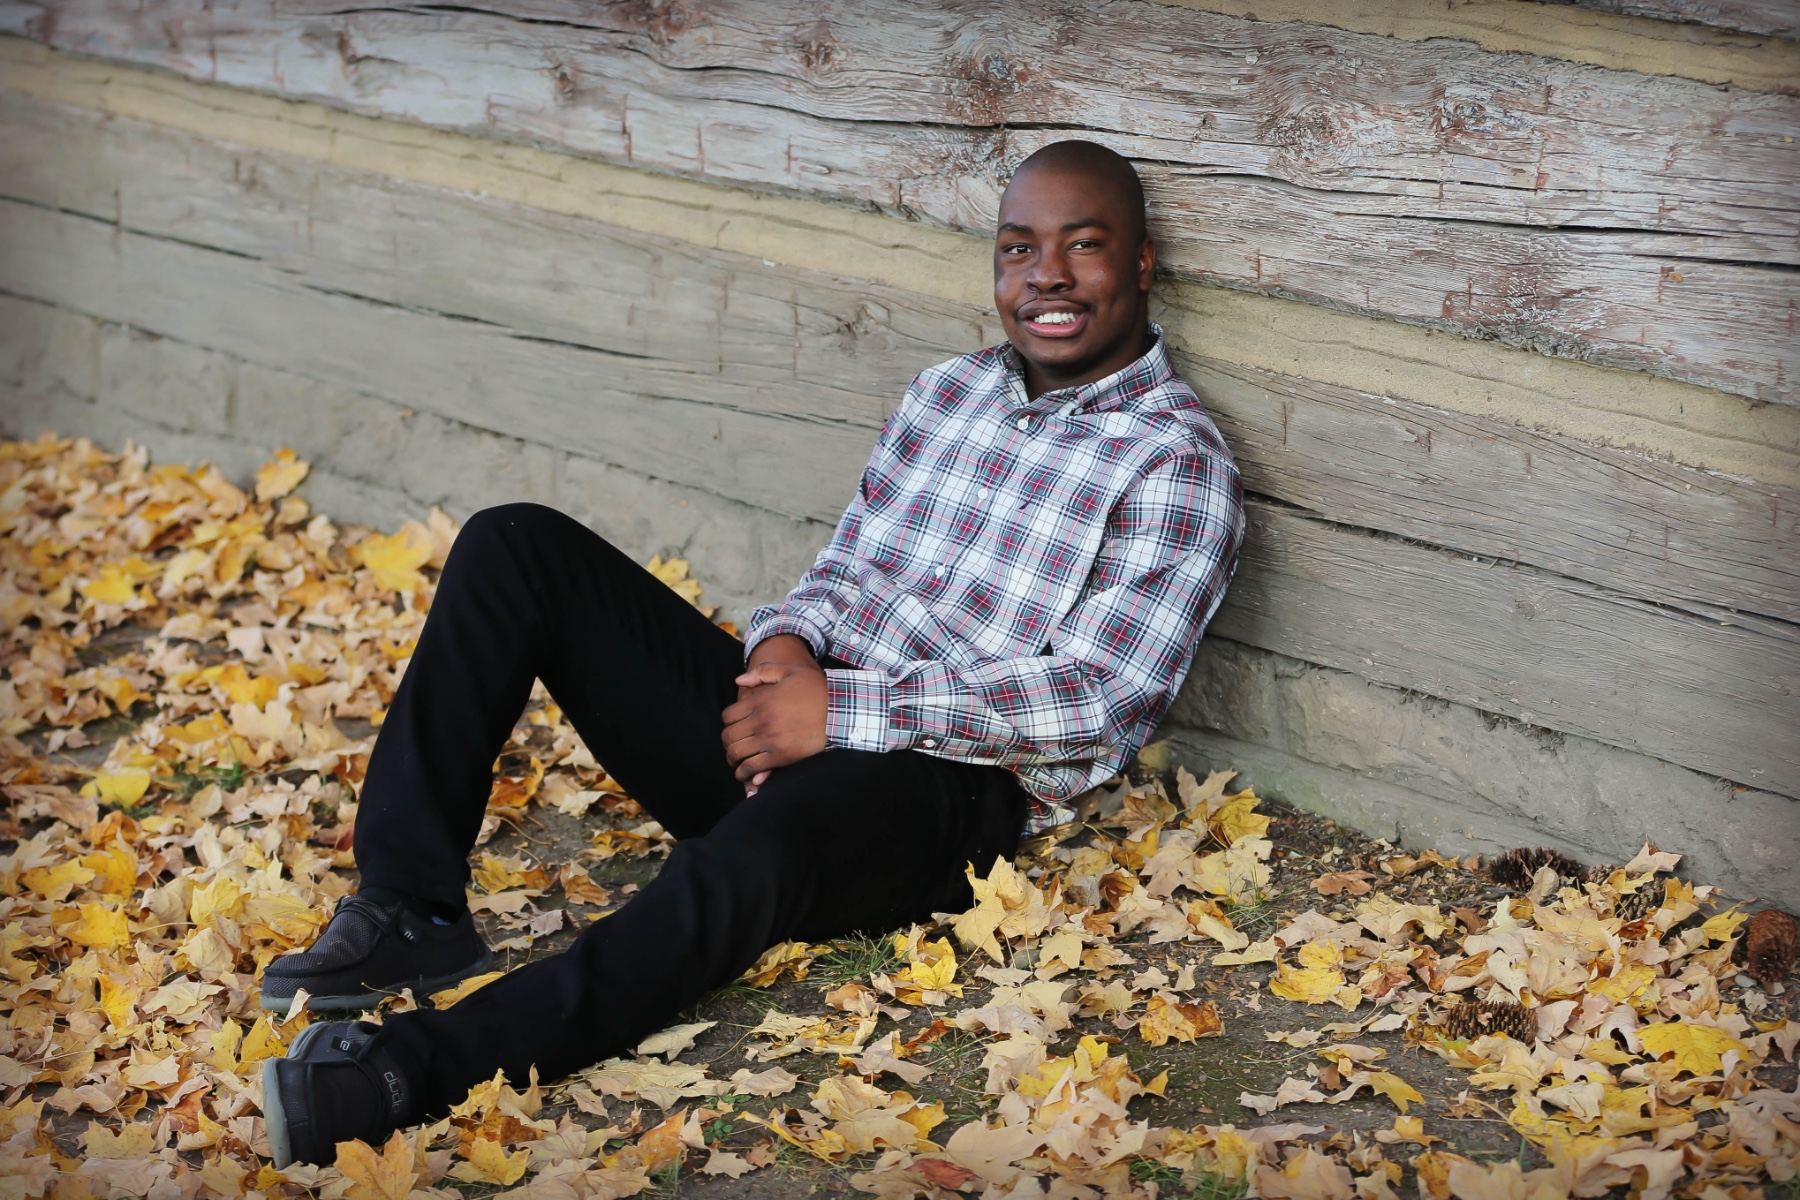 Remilson Forlevil, a teenage Black boy with very short black hair, is smiling as he sits on the ground surrounded by autumn leaves. He is wearing a grey, black and red flannel shirt with black pants and black shoes.